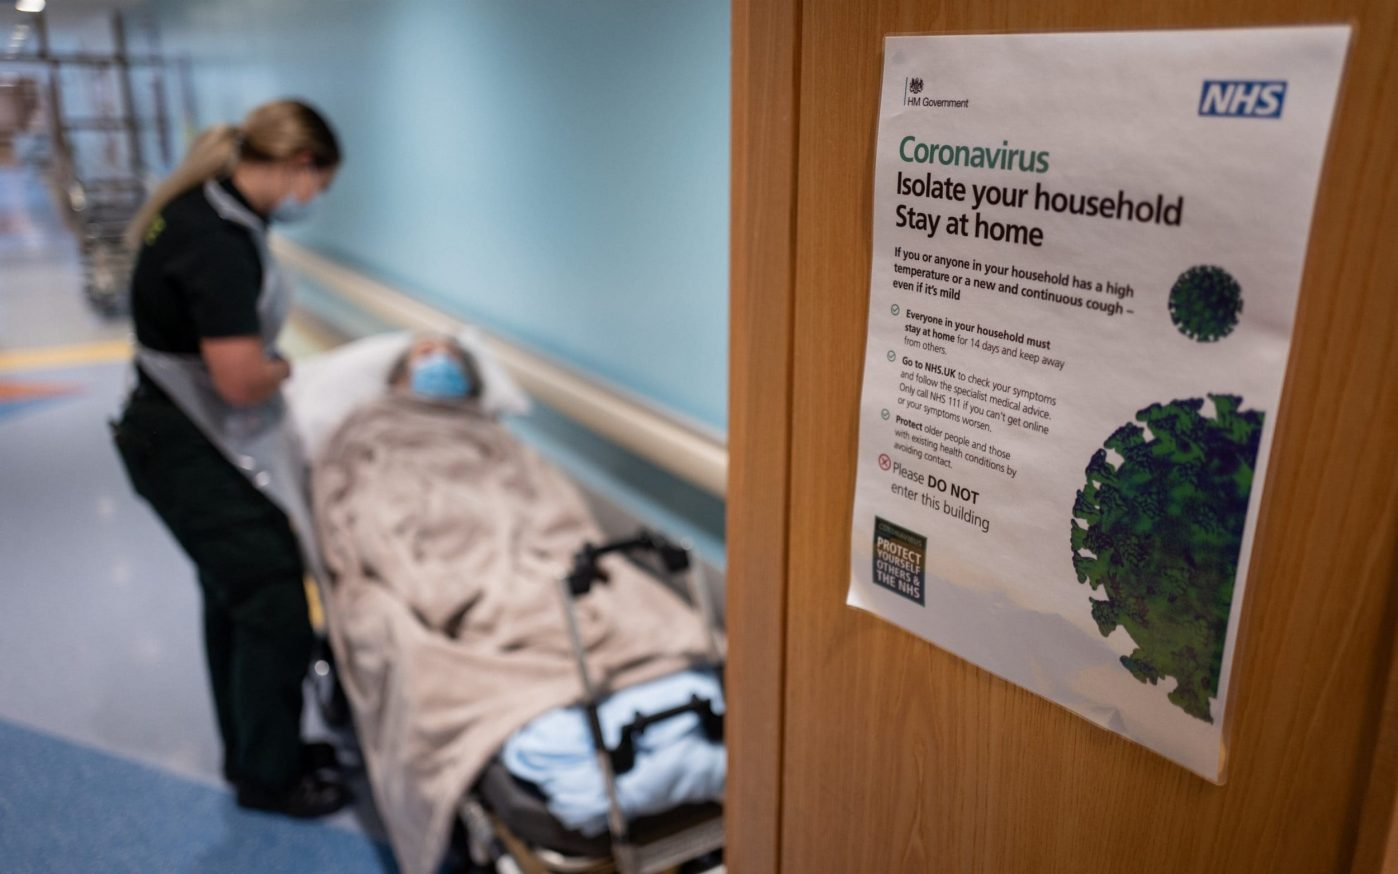 NHS and care homes to be prioritised for Covid-19 tests